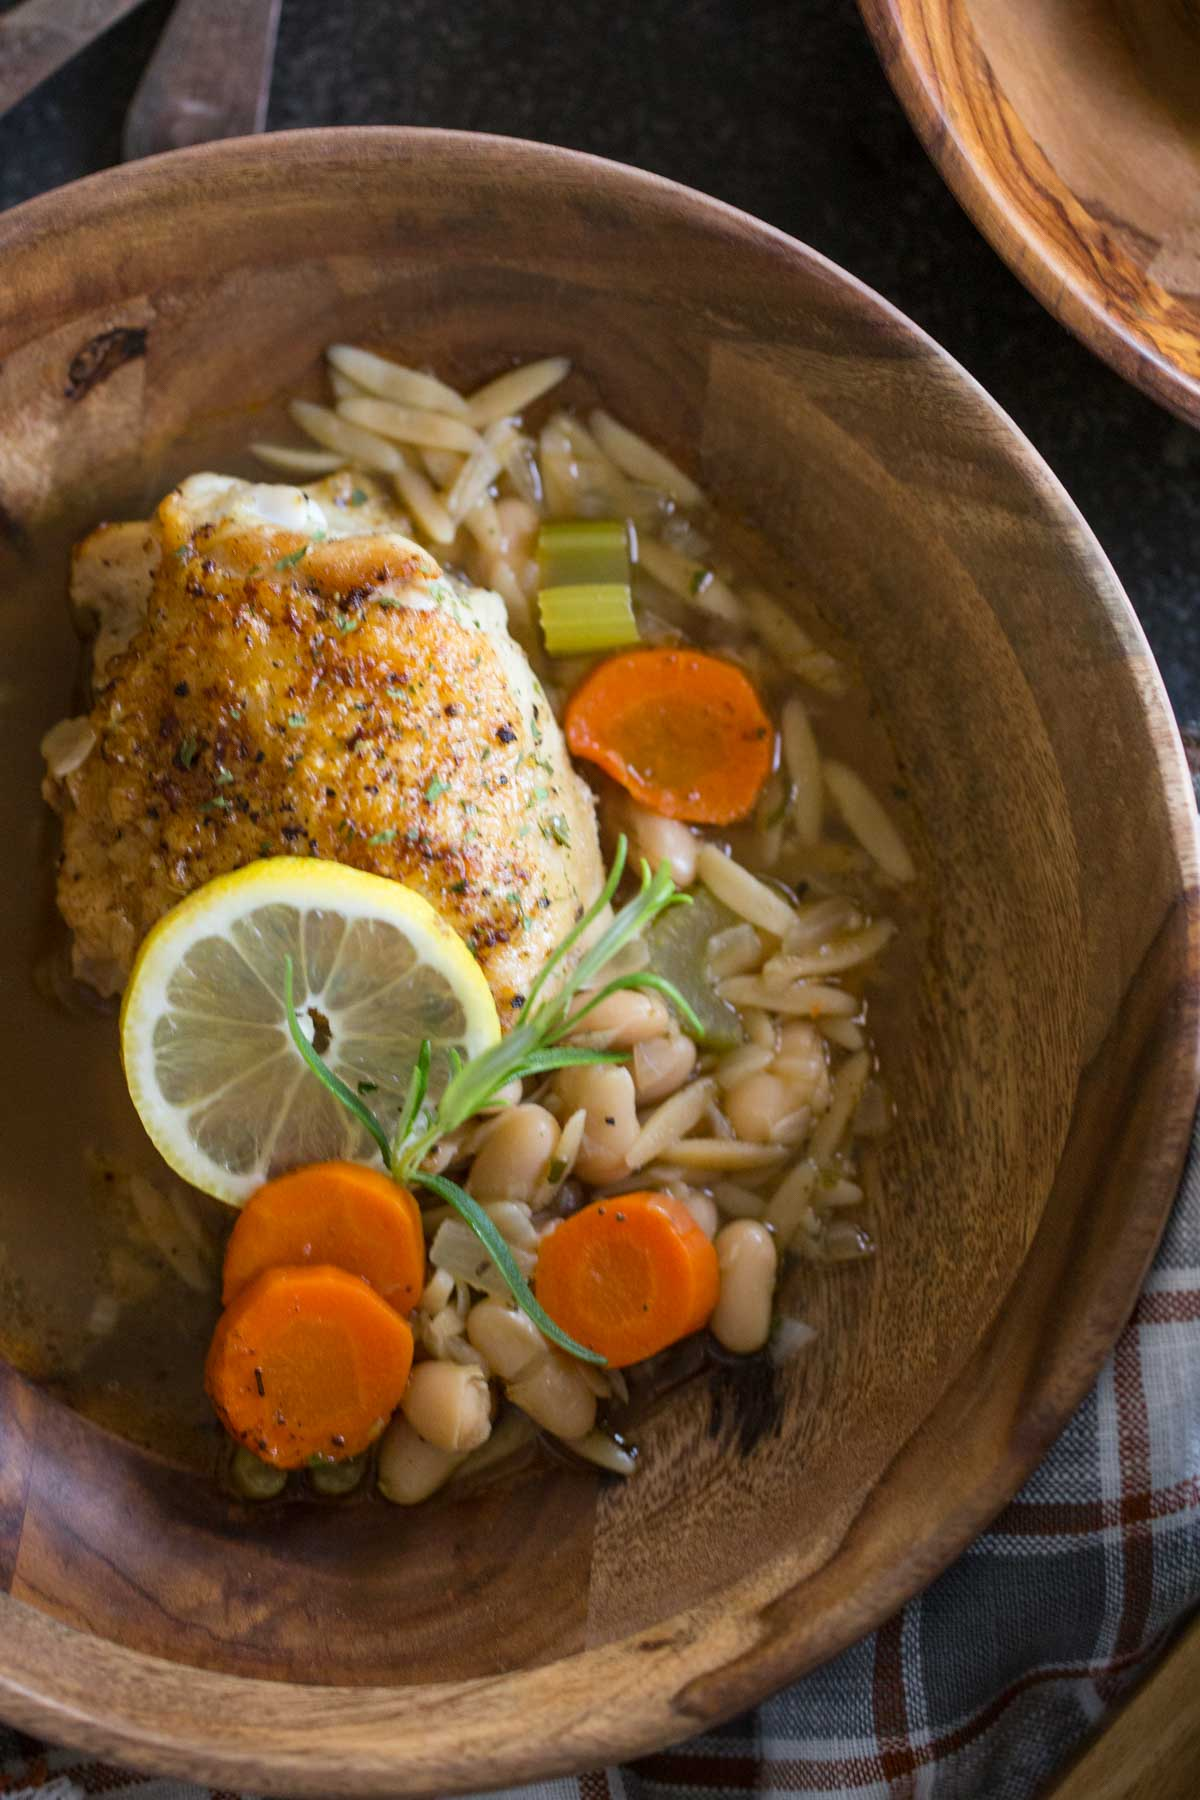 Rustic Lemon Rosemary Chicken and Orzo in a wood bowl, garnished with rosemary and a lemon slice.